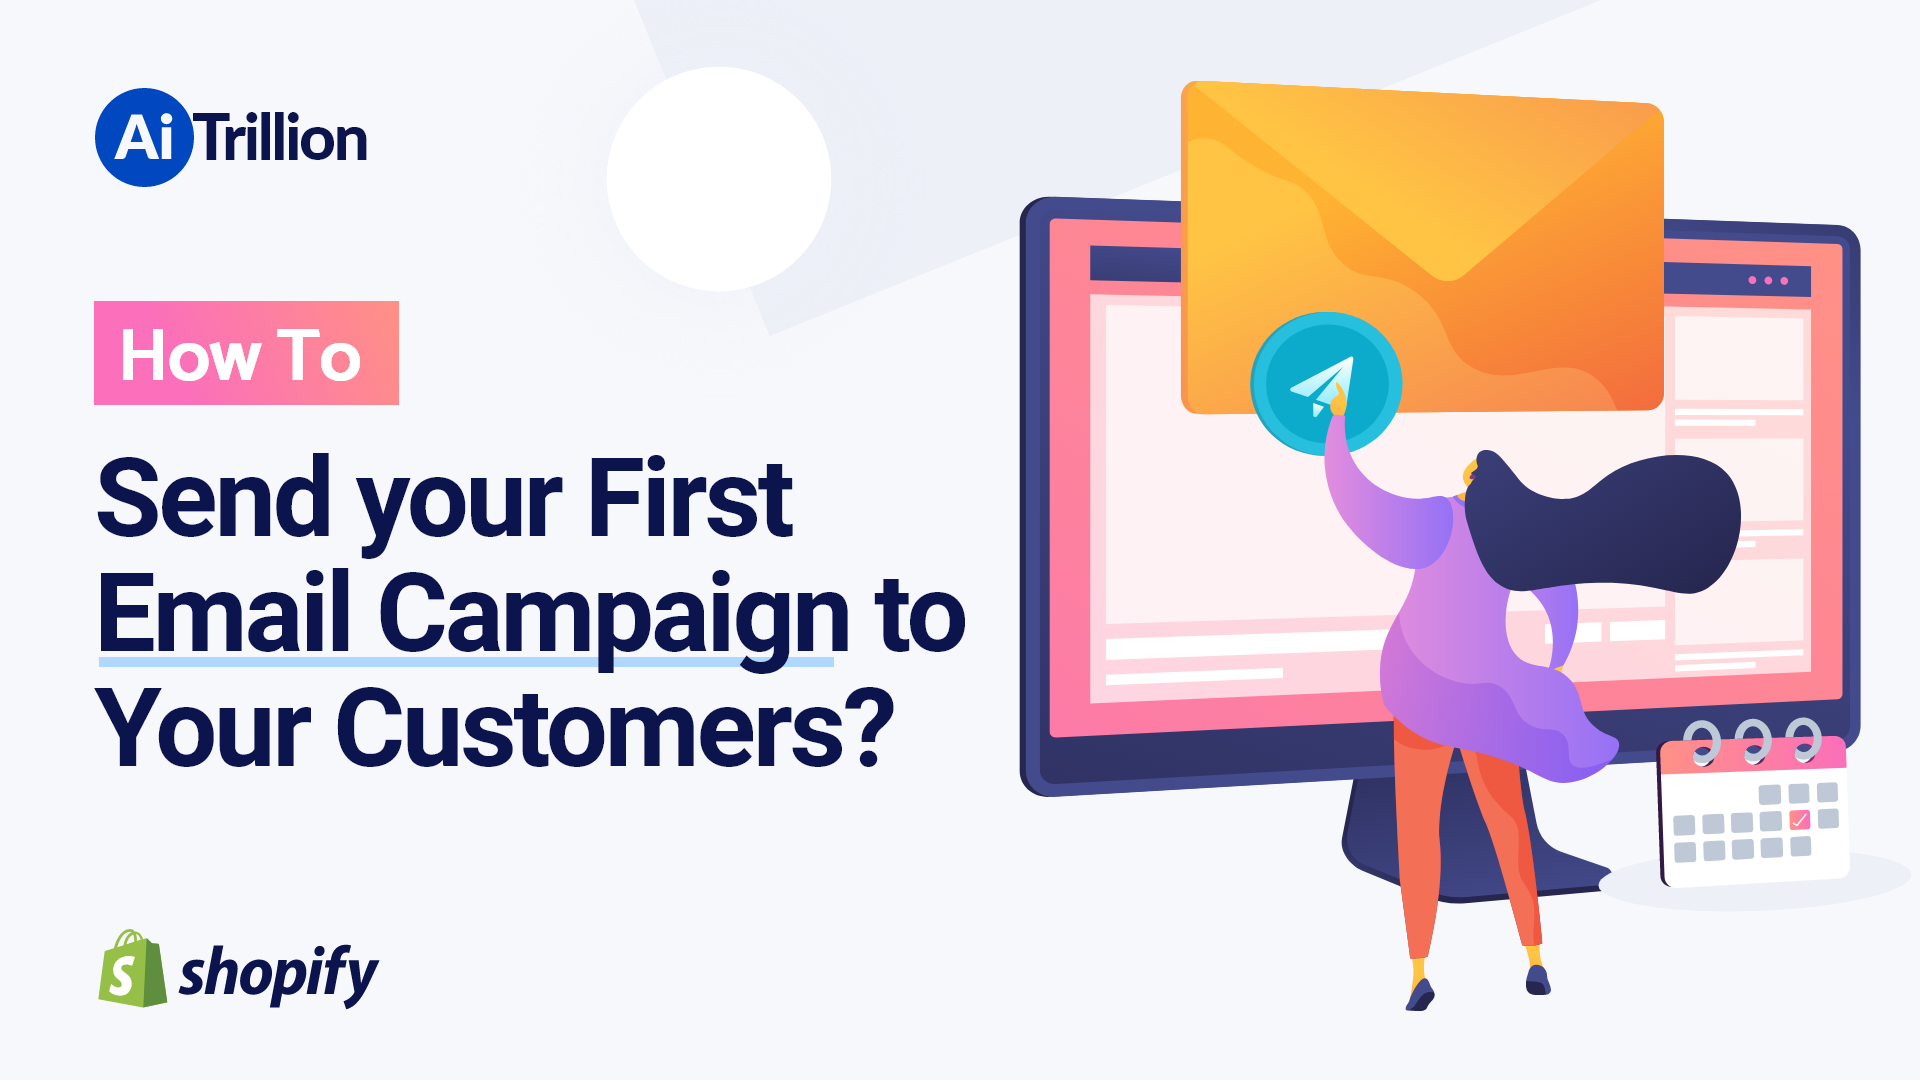 How To Send your First Email Campaign to Your Customers